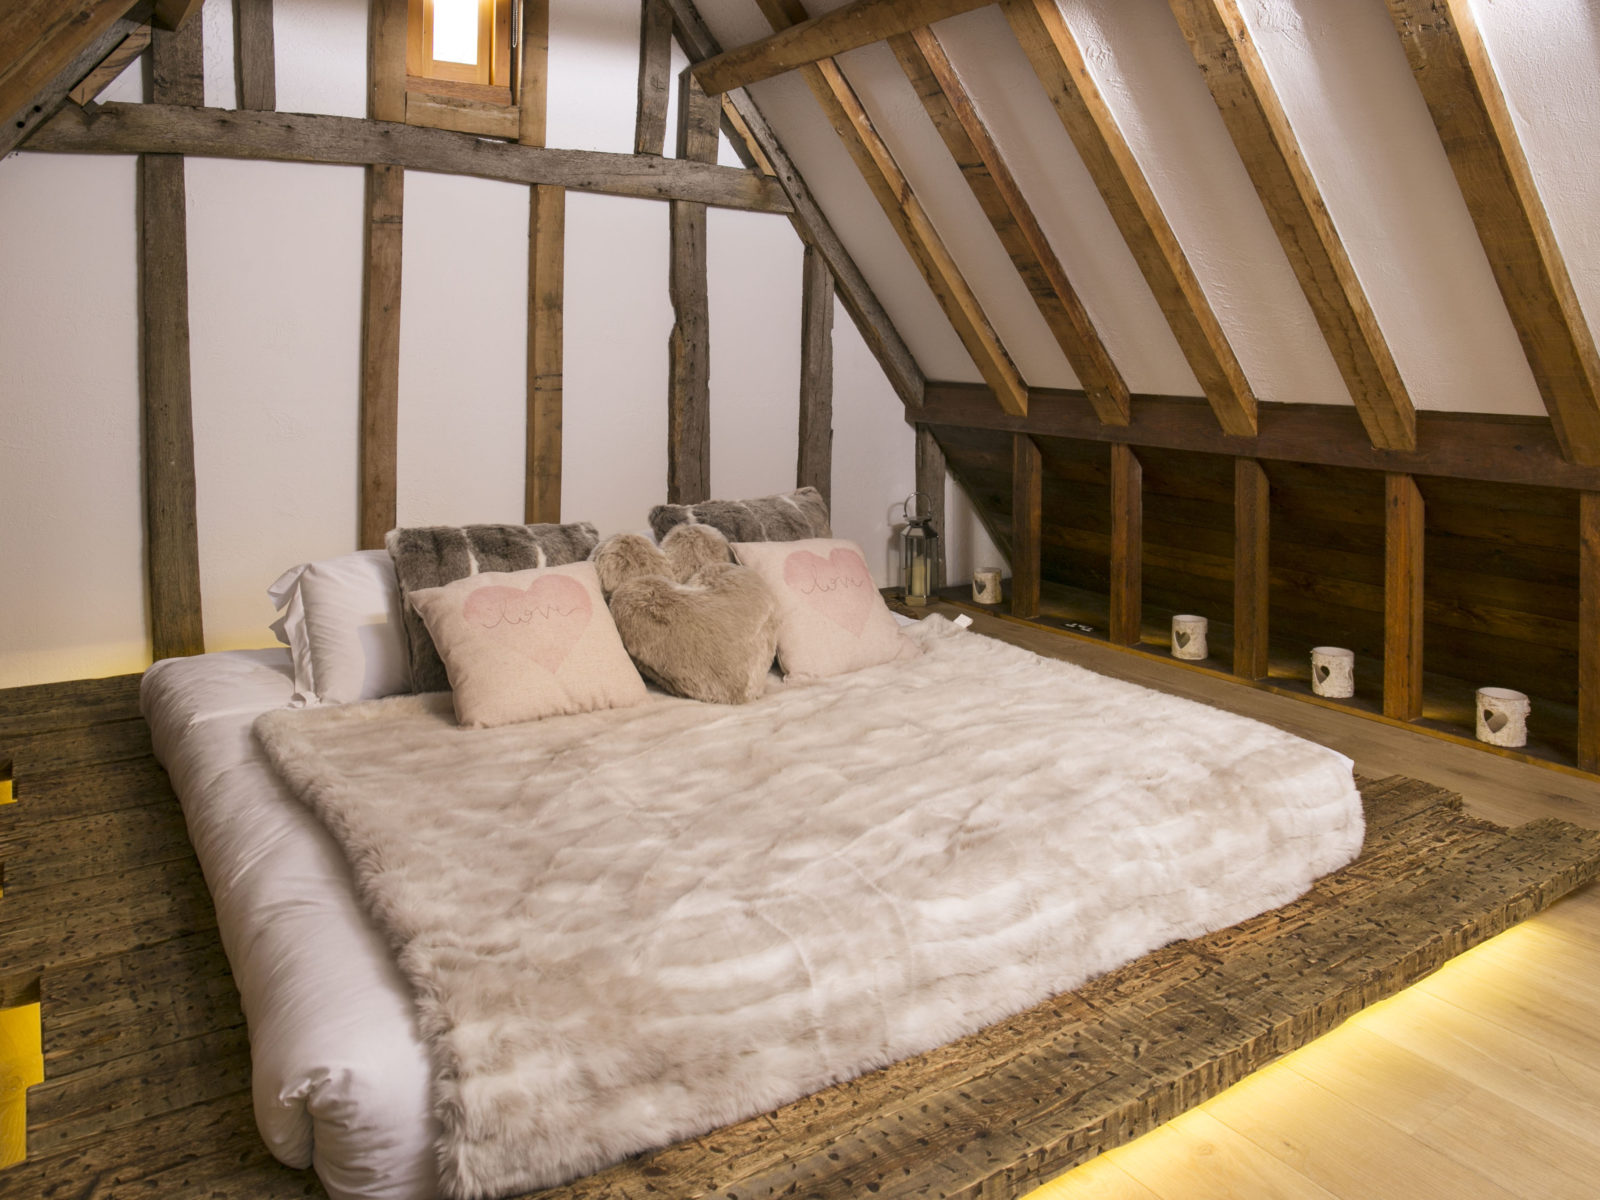 Burry Lodge hotel honeymoon bespoke bed